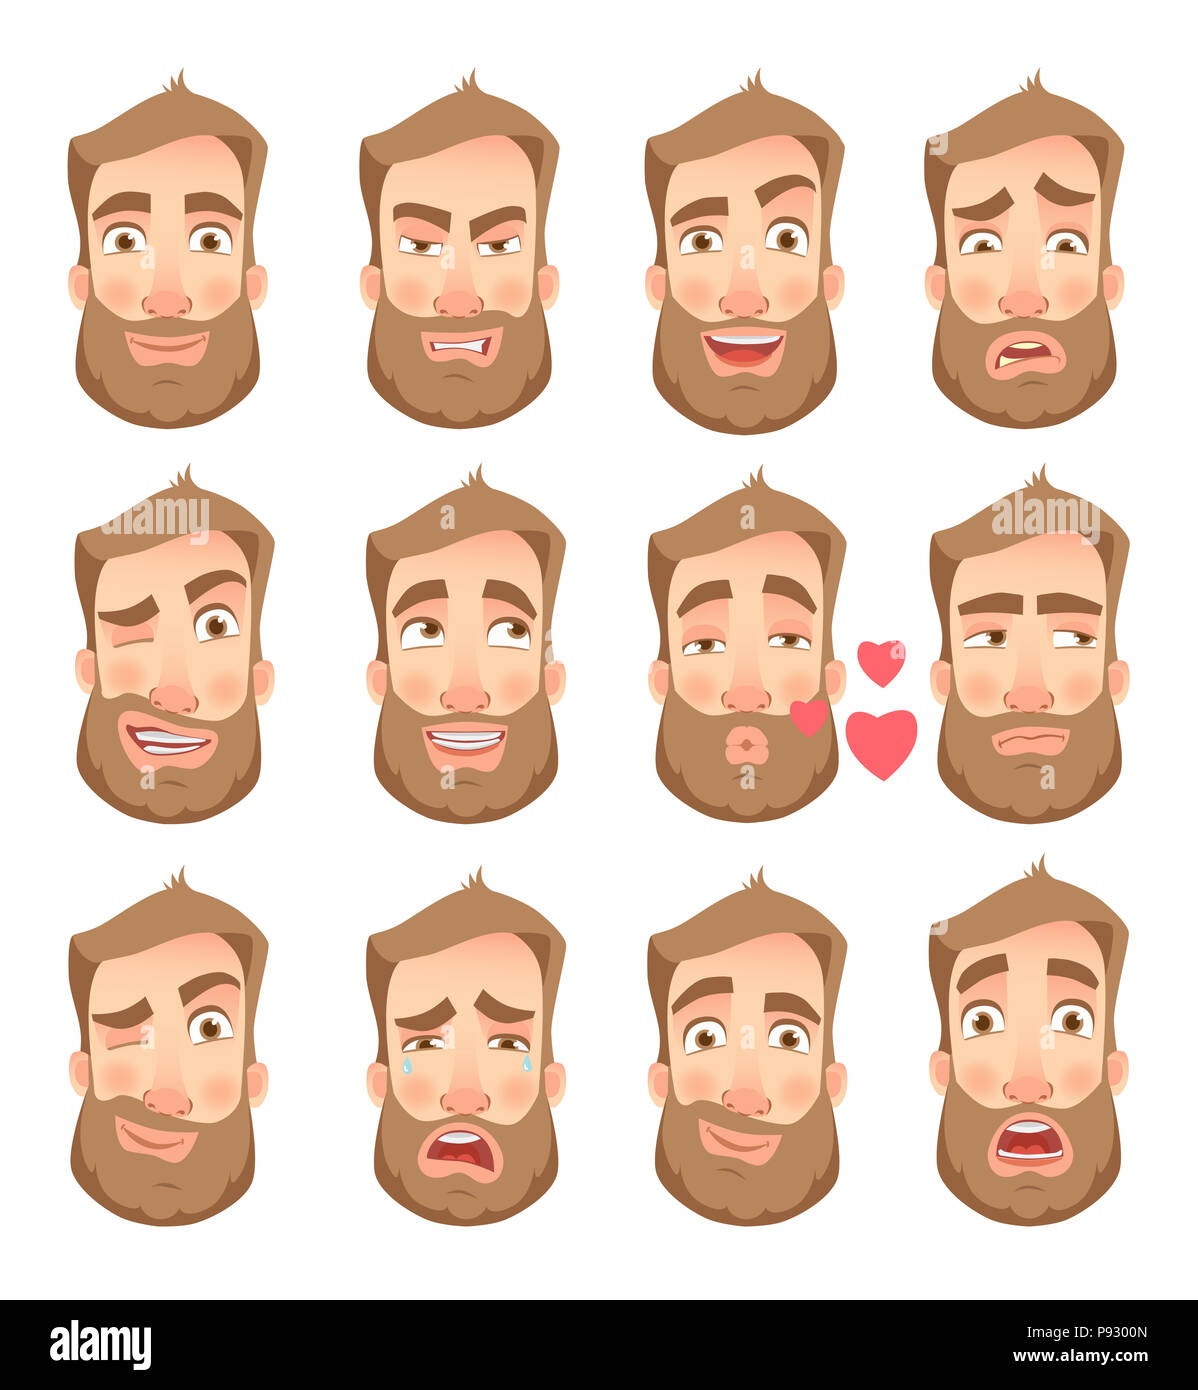 Man face expression. Human emotions. Set of cartoon  illustrations. - Stock Image